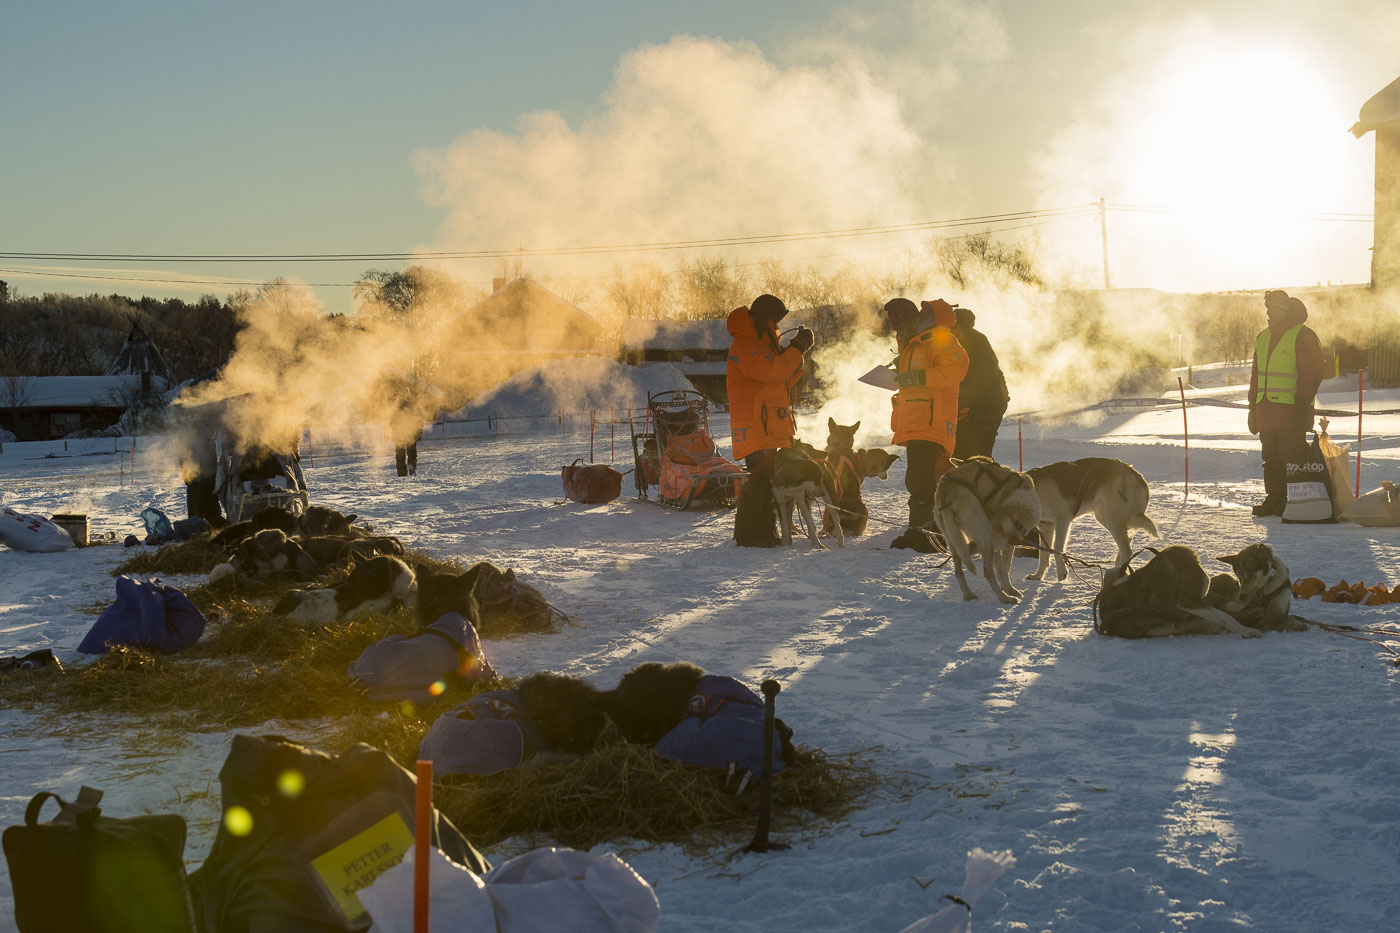 Steam rises up from cooking sites where mushers prepare meals for their teams at the Neiden 2 checkpoint for the 2019 Finnmarksl...